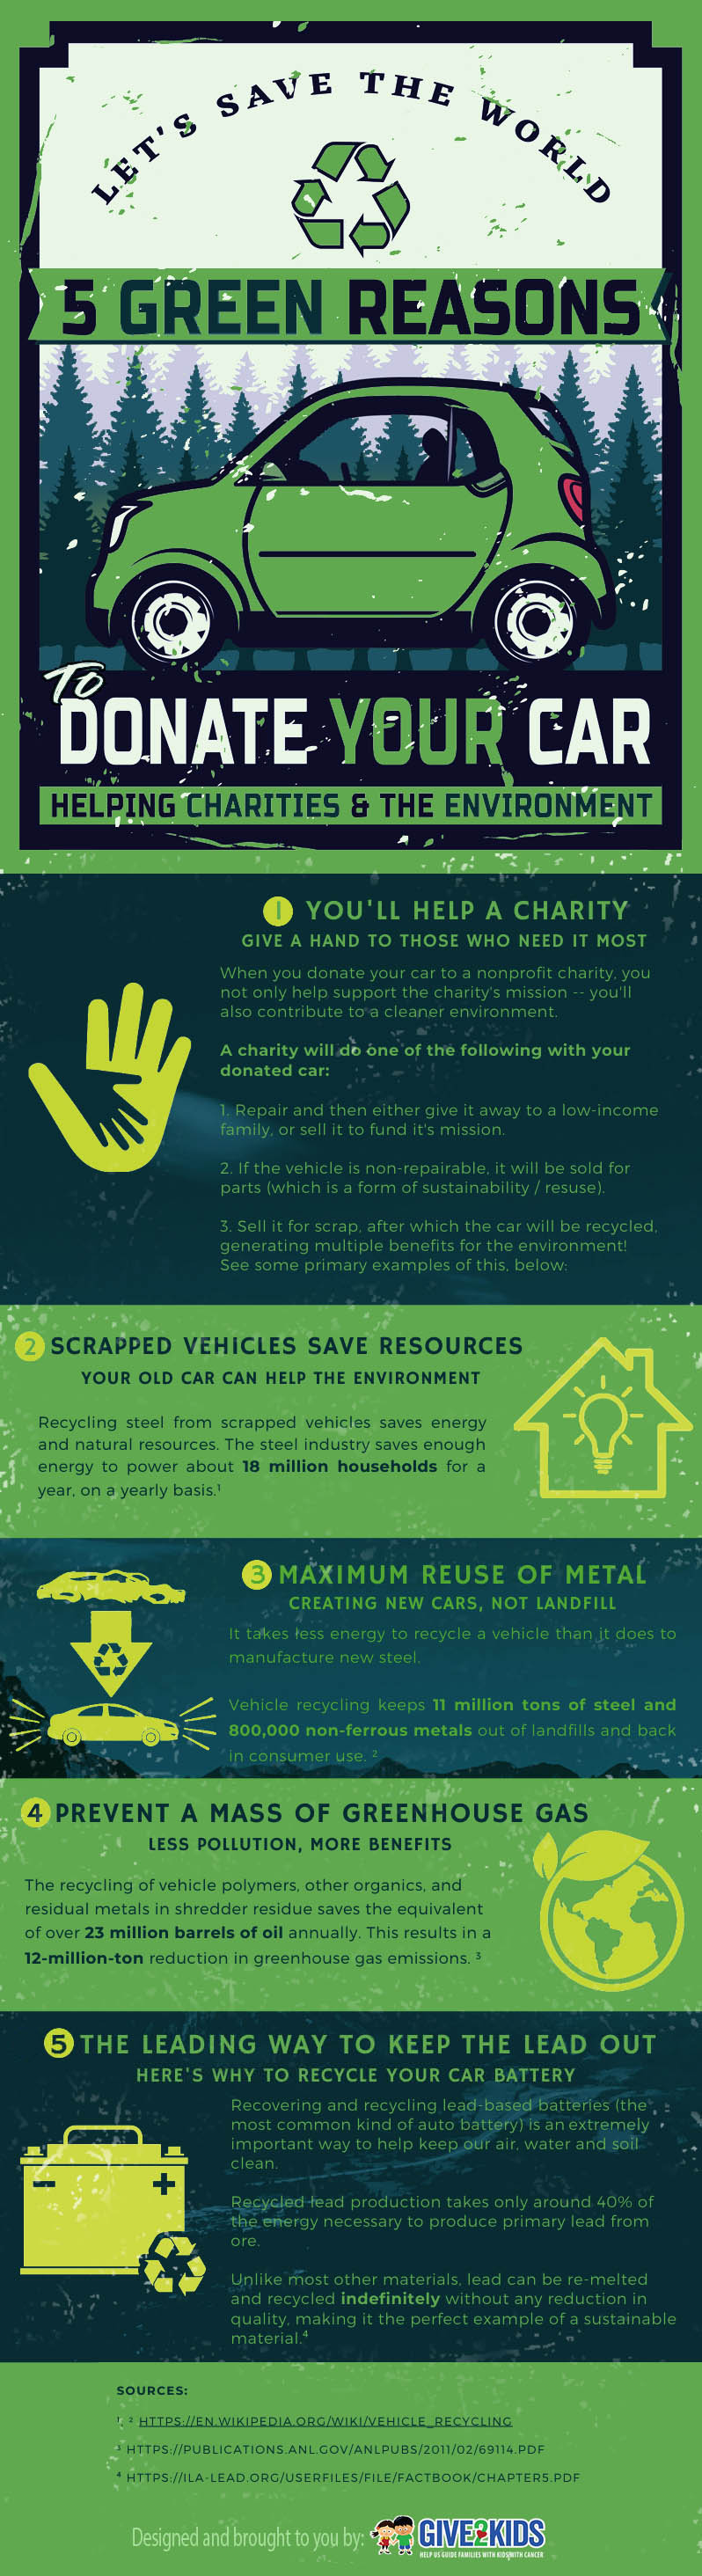 donate-car-nj-infographic